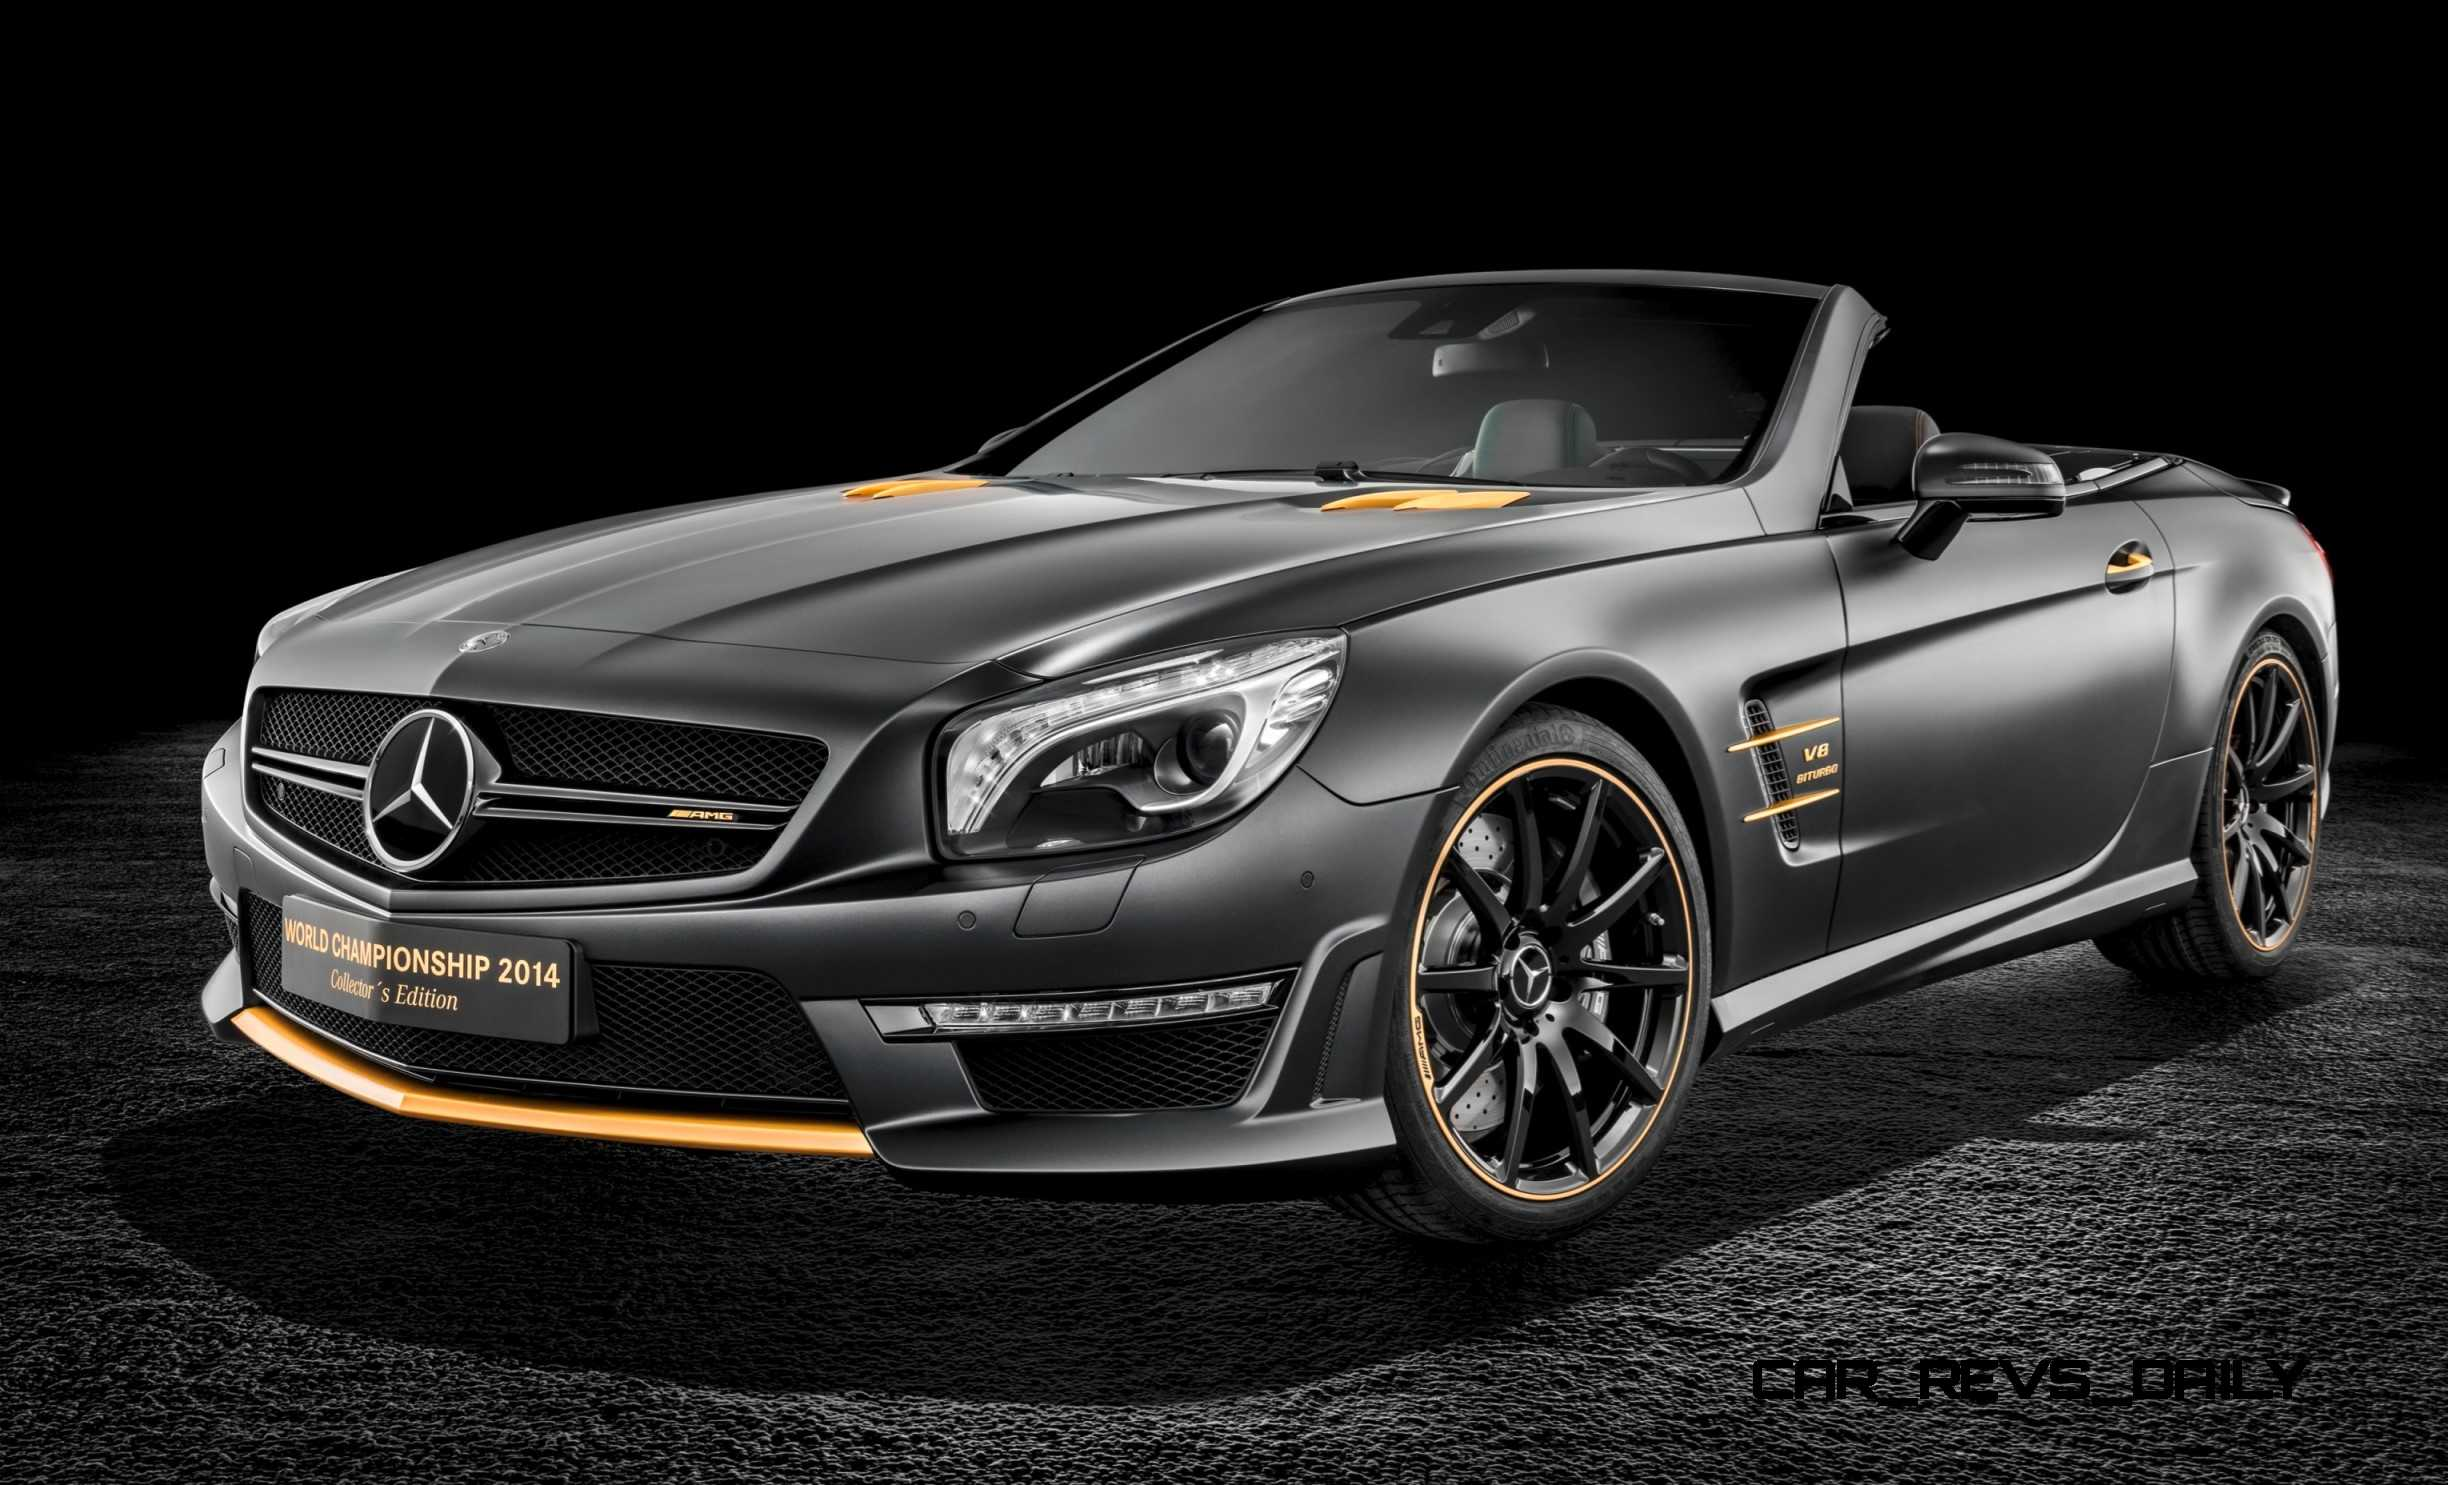 2015 mercedes benz sl63 amg world championship edition. Black Bedroom Furniture Sets. Home Design Ideas